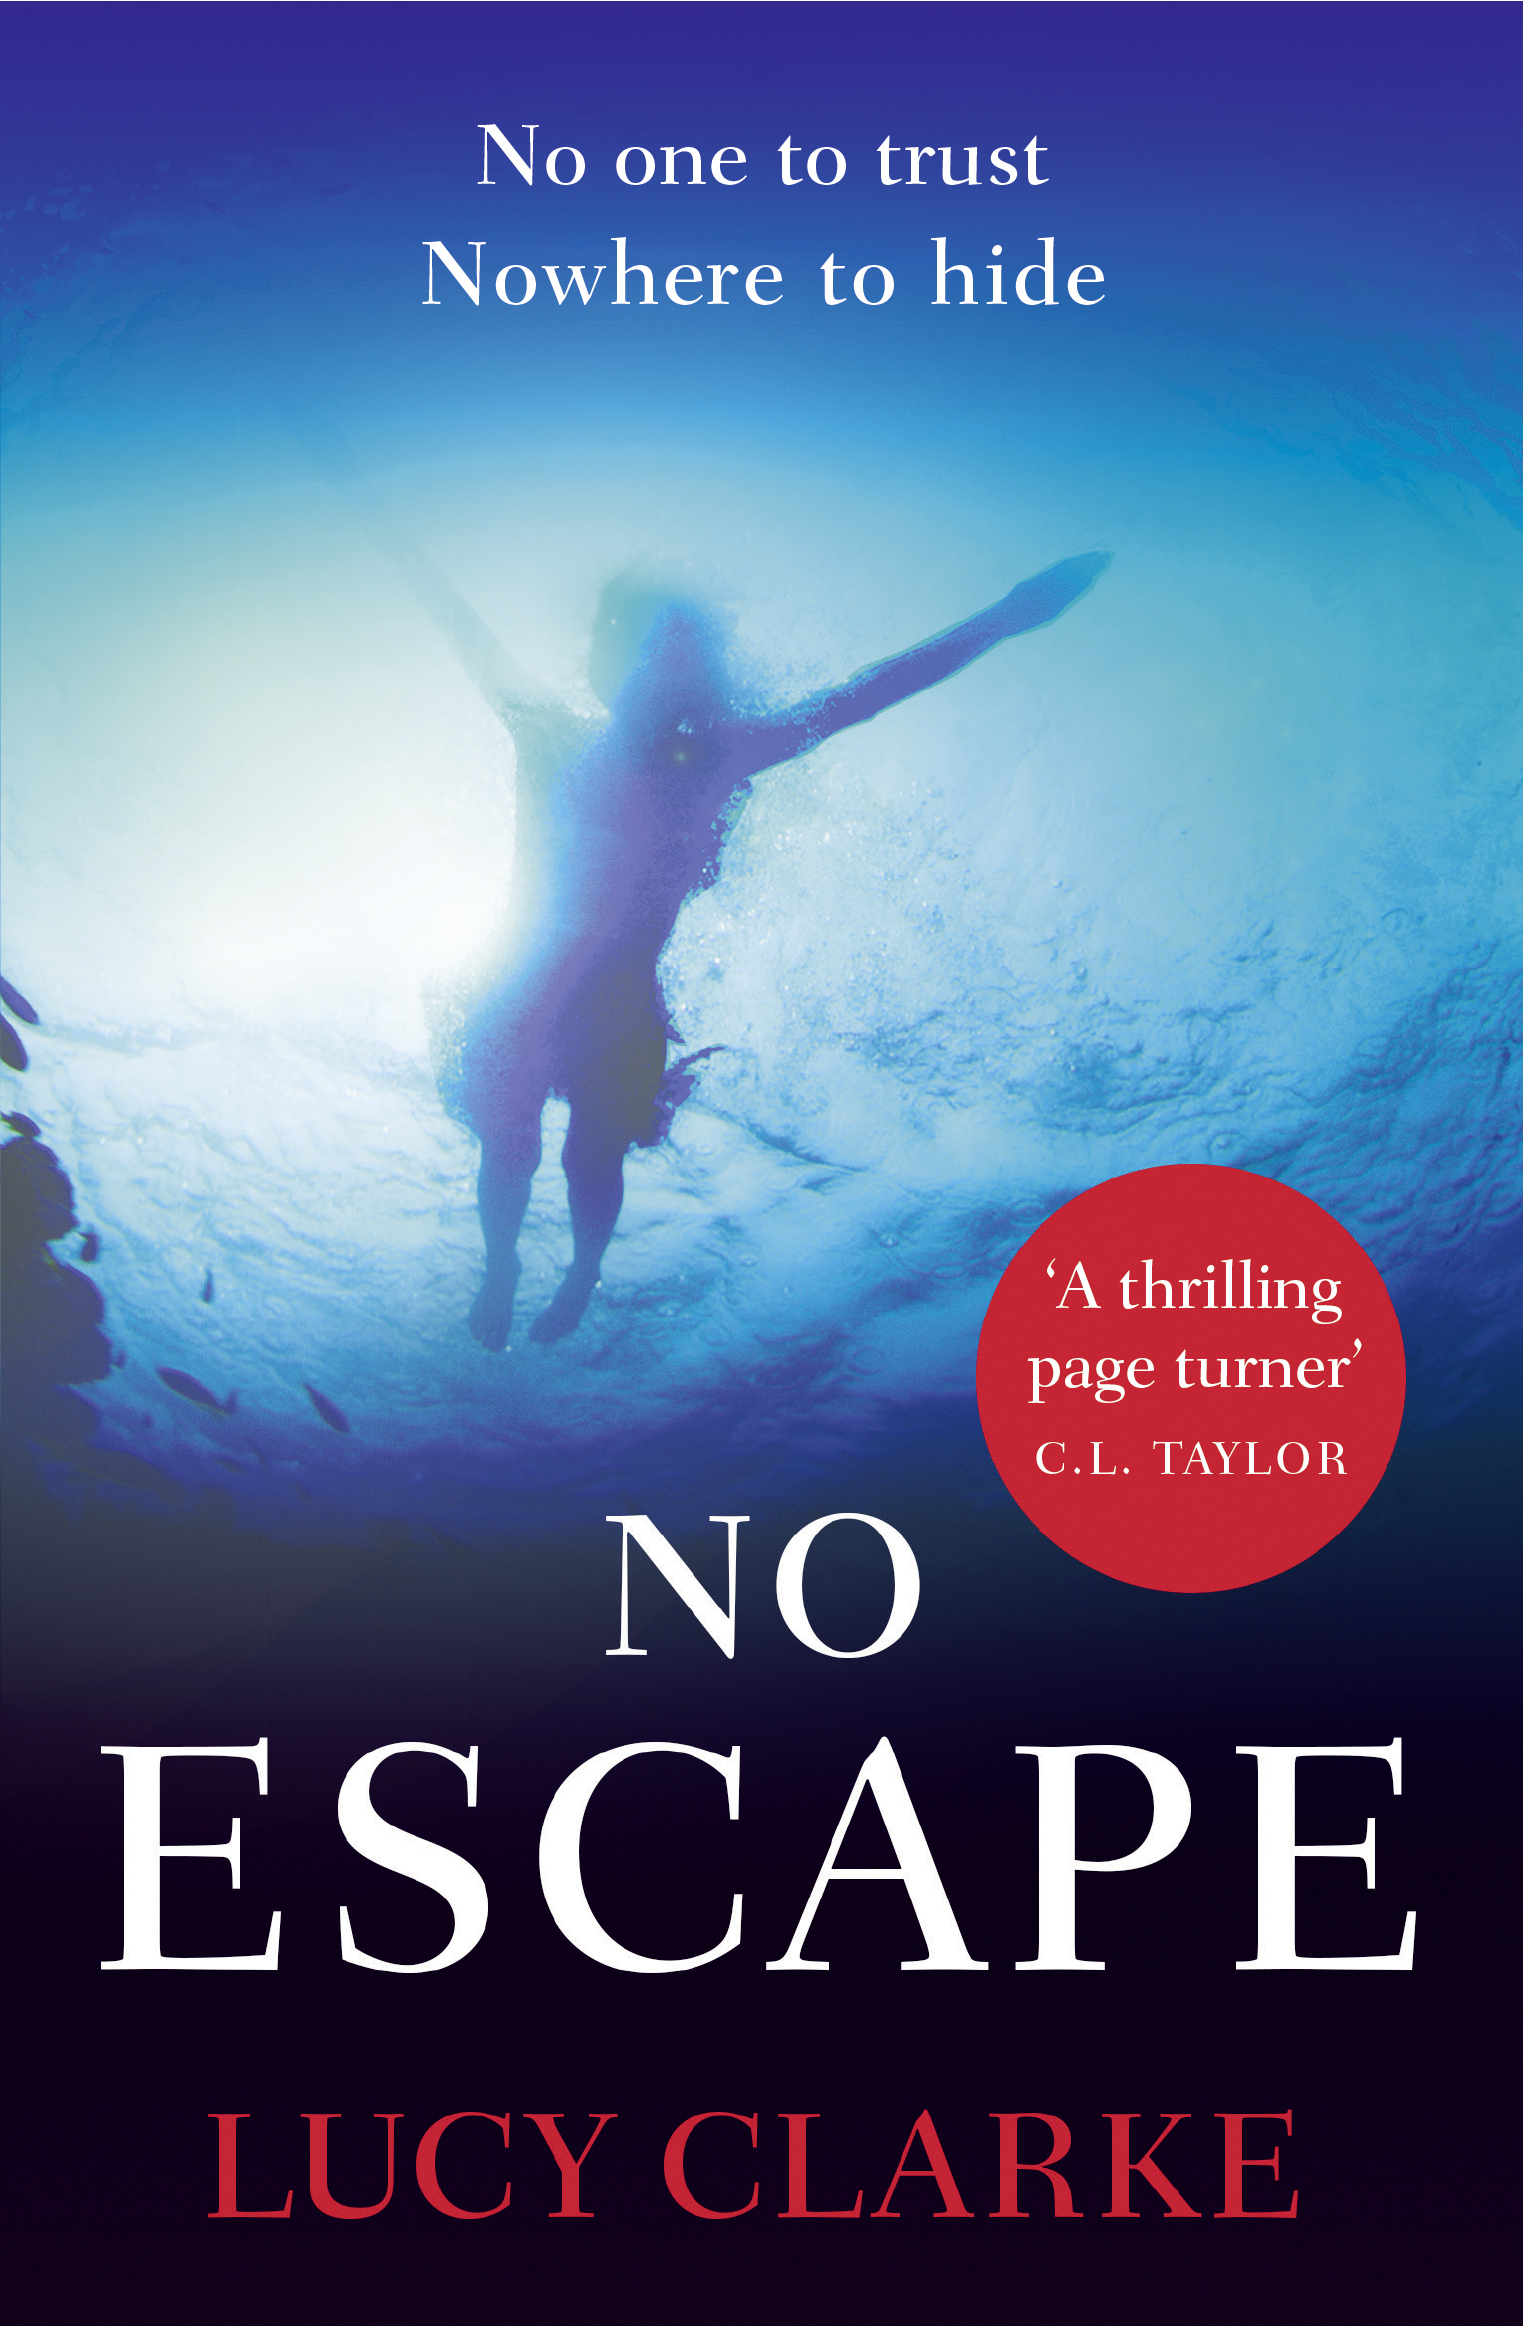 Lucy Clarke No Escape: The most addictive, gripping thriller with a shocking twist kate hewitt beneath the veil of paradise